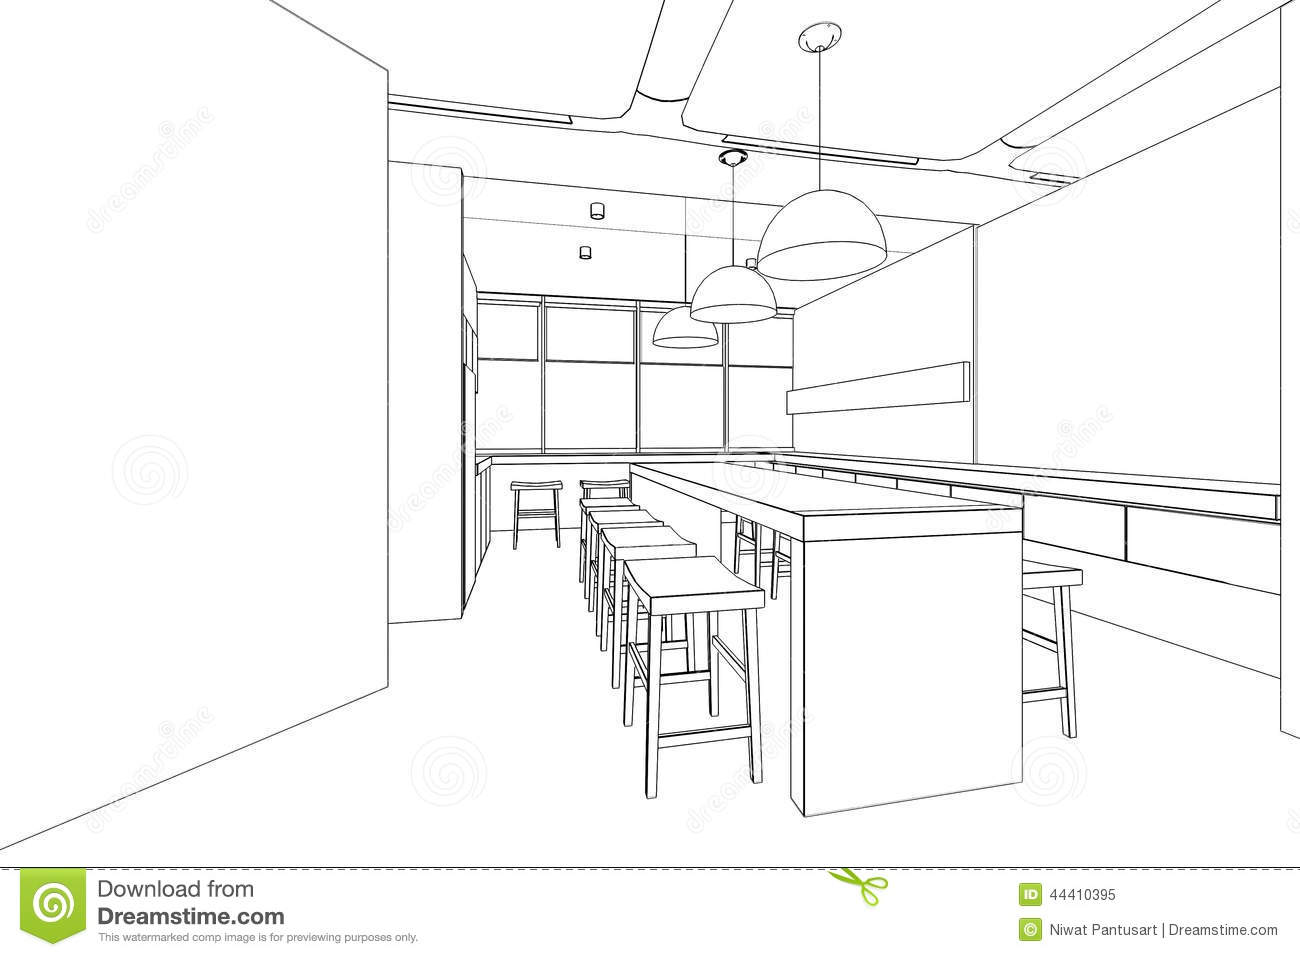 Outline Sketch Of A Interior Pantry Area Stock